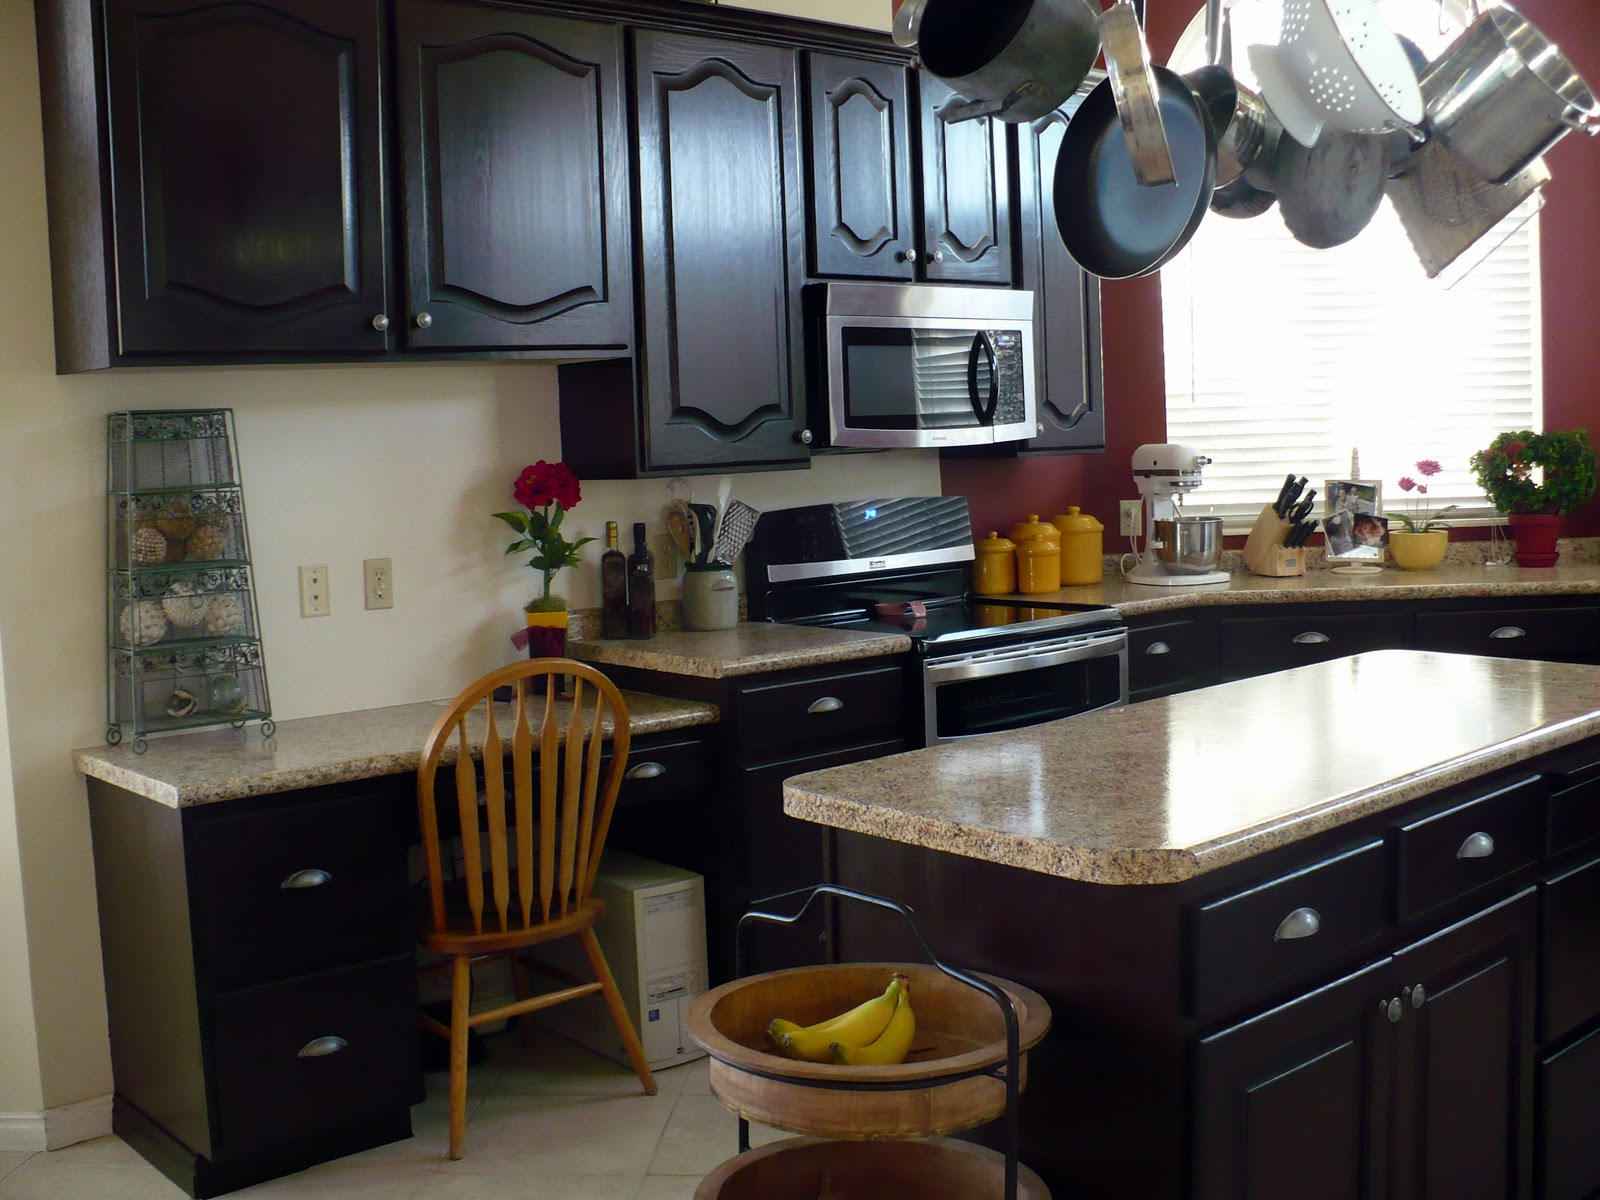 250 kitchen makeover with  20 granite countertops   faux real  pretty lil u0027 posies   250 kitchen makeover with  20 granite      rh   prettylilposies blogspot com